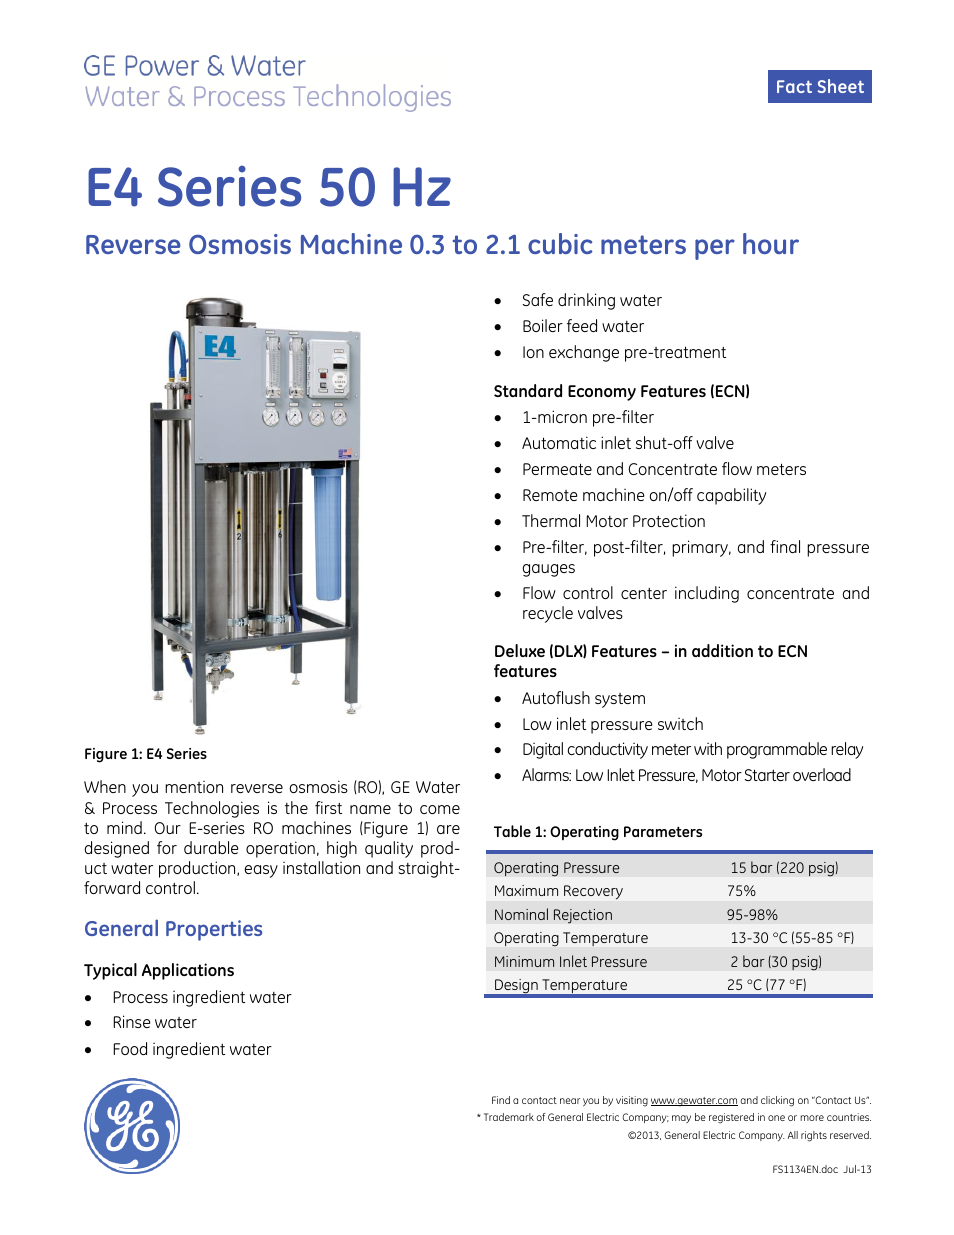 Ge Pw E Series Reverse Osmosis E4 50 Hz User Manual 2 Pages General Electric Relay Manuals